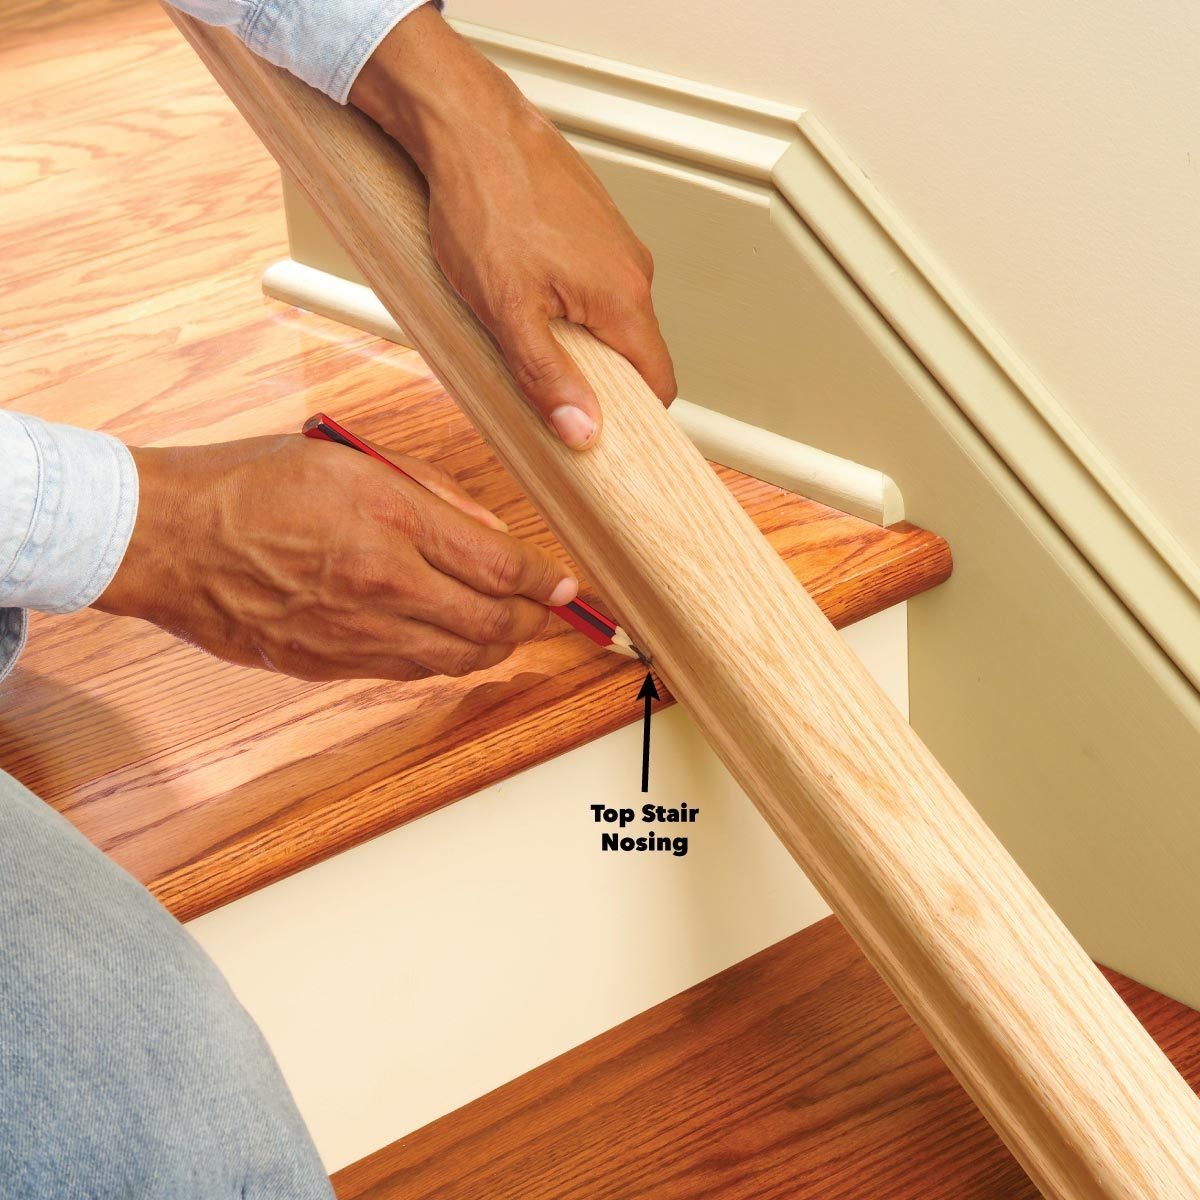 Install A New Stair Handrail | Best Wood For Stair Railing | Railing Kits | Paint | Indoor Stair | Balcony Railing Ideas | Deck Railing Designs